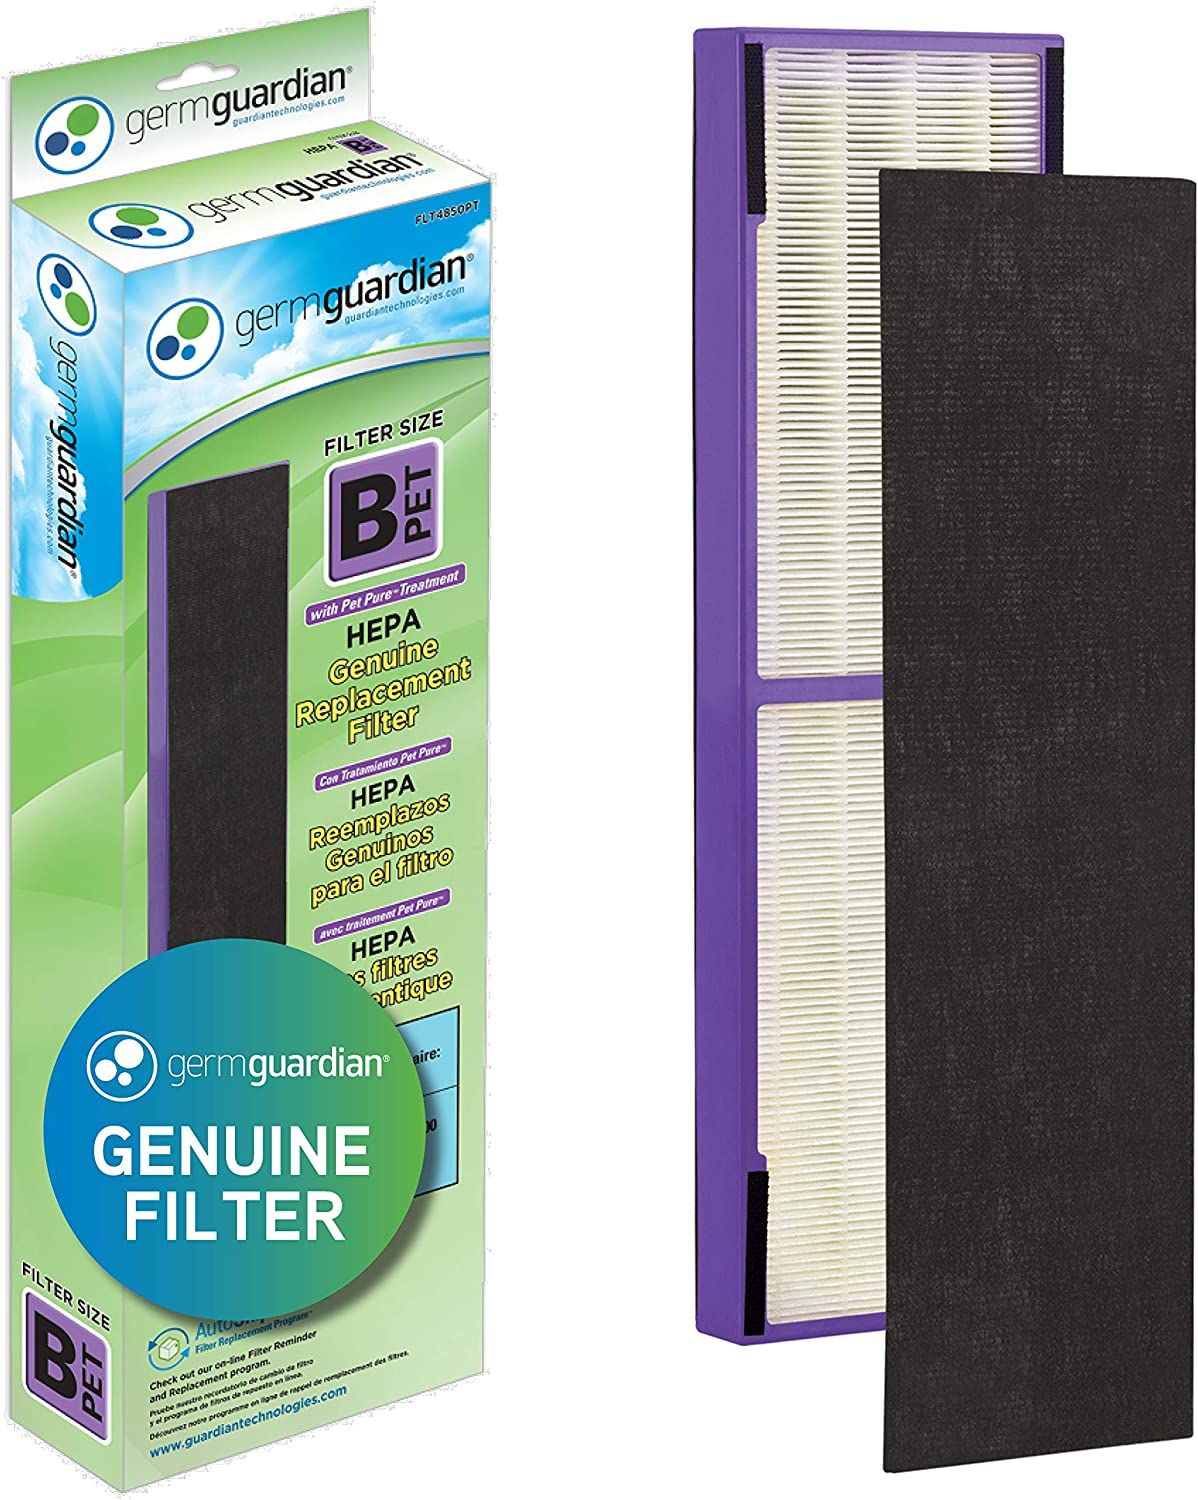 Germ Guardian FLT4850PT True HEPA Genuine Air Purifier Replacement Filter B, with Pet Pure Treatment for GermGuardian AC4900, AC4825, AC4850PT, CDAP4500, AC4300, and More, 1 Count (Pack of 1): Health & Personal Care